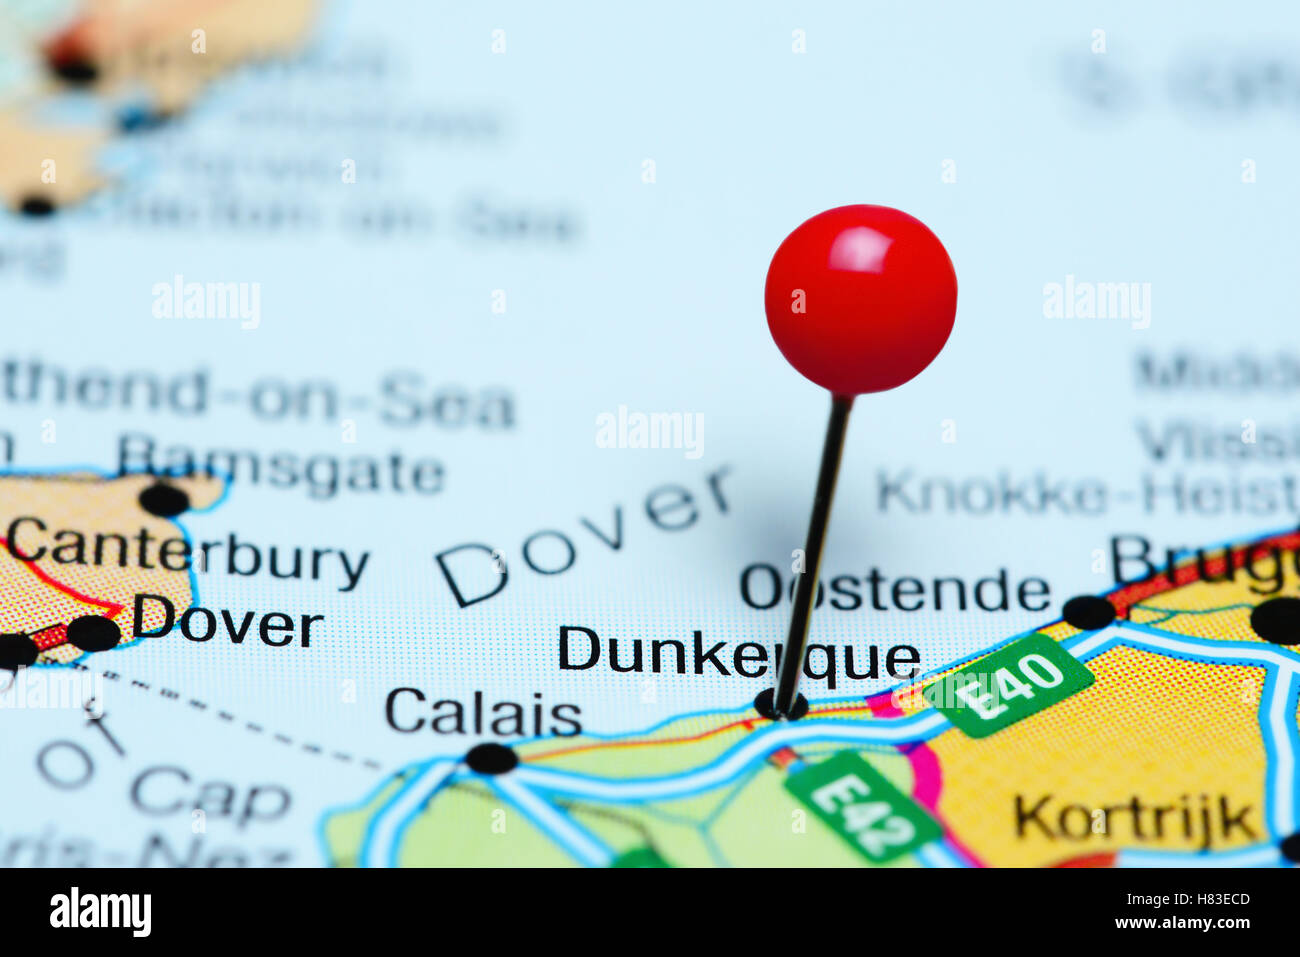 Map Of France Dunkirk.Dunkerque Pinned On A Map Of France Stock Photo 125467005 Alamy